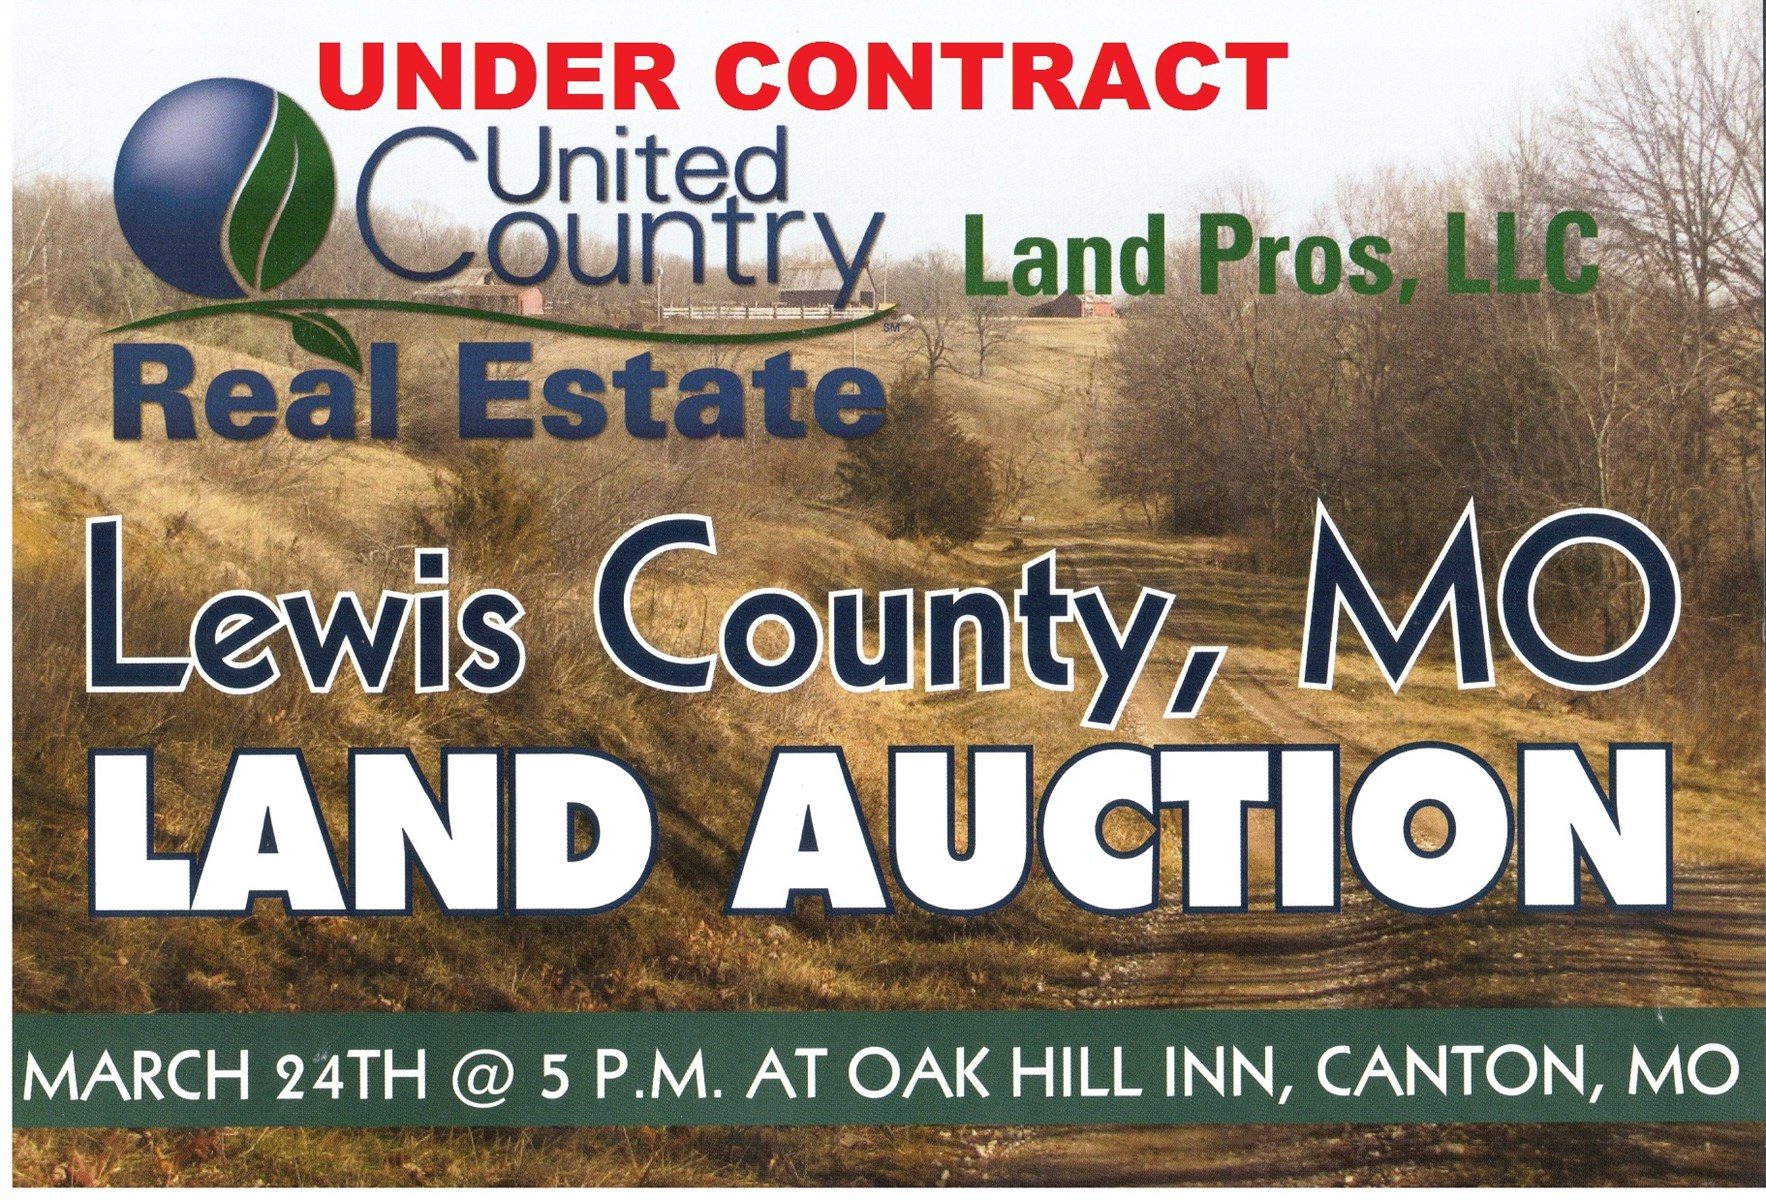 NORTHERN MO LAND AUCTION, PASTURE, ROW CROP LAND AUCTION